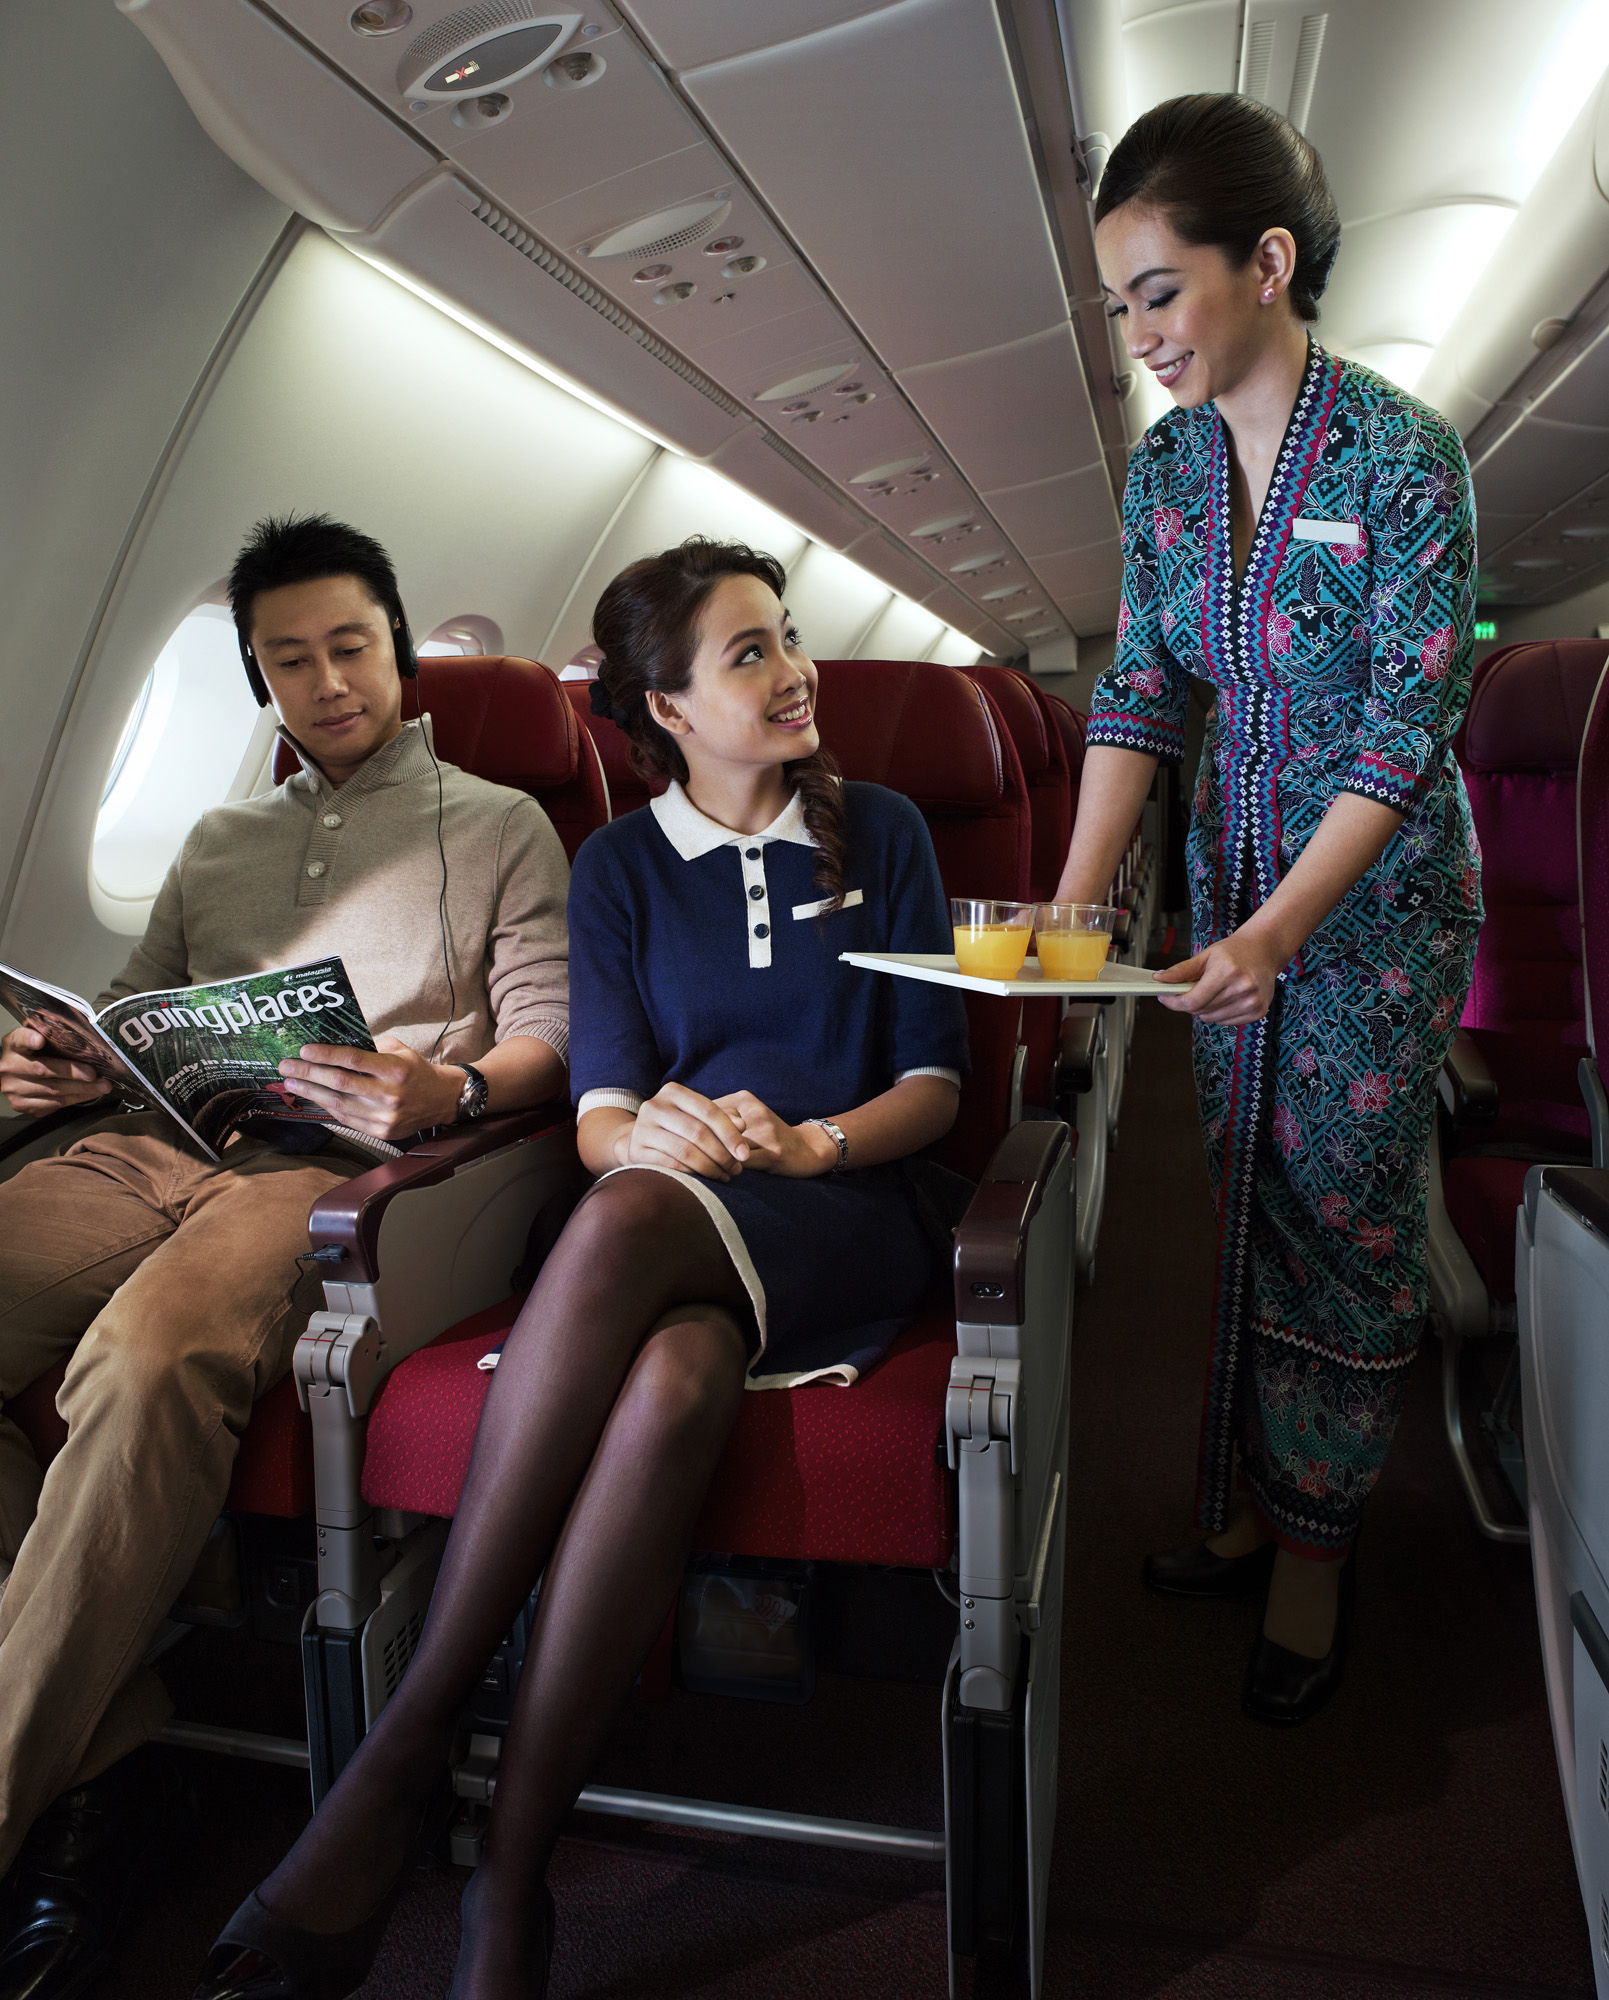 Malaysia Airlines has received many international awards for its service and hospitality! - Photo from Malaysia Airlines